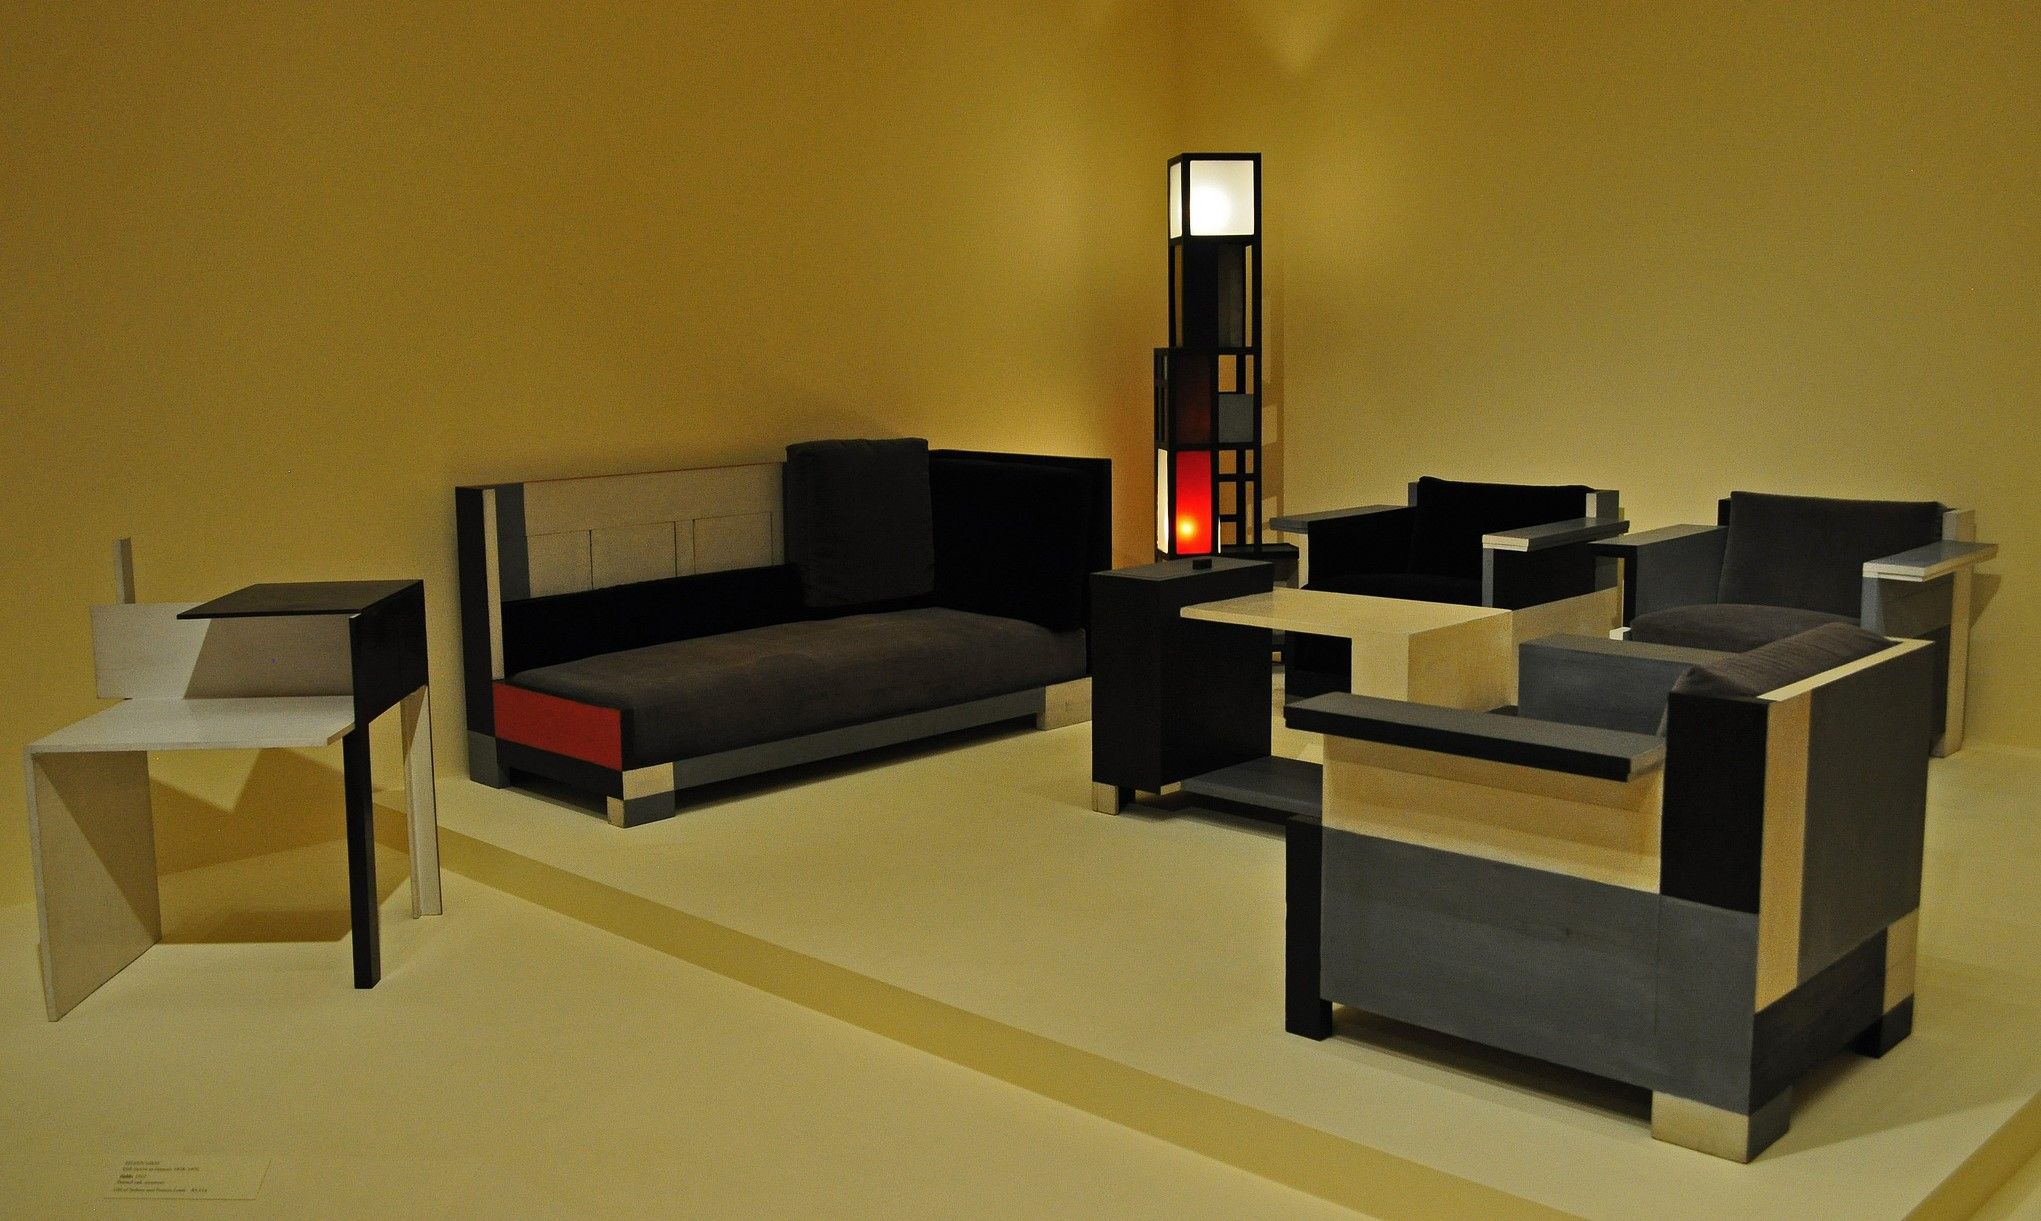 Pin By Alexander Erz Geh Lz On Muebles 1920s Pinterest # Muebles Para Buardillas